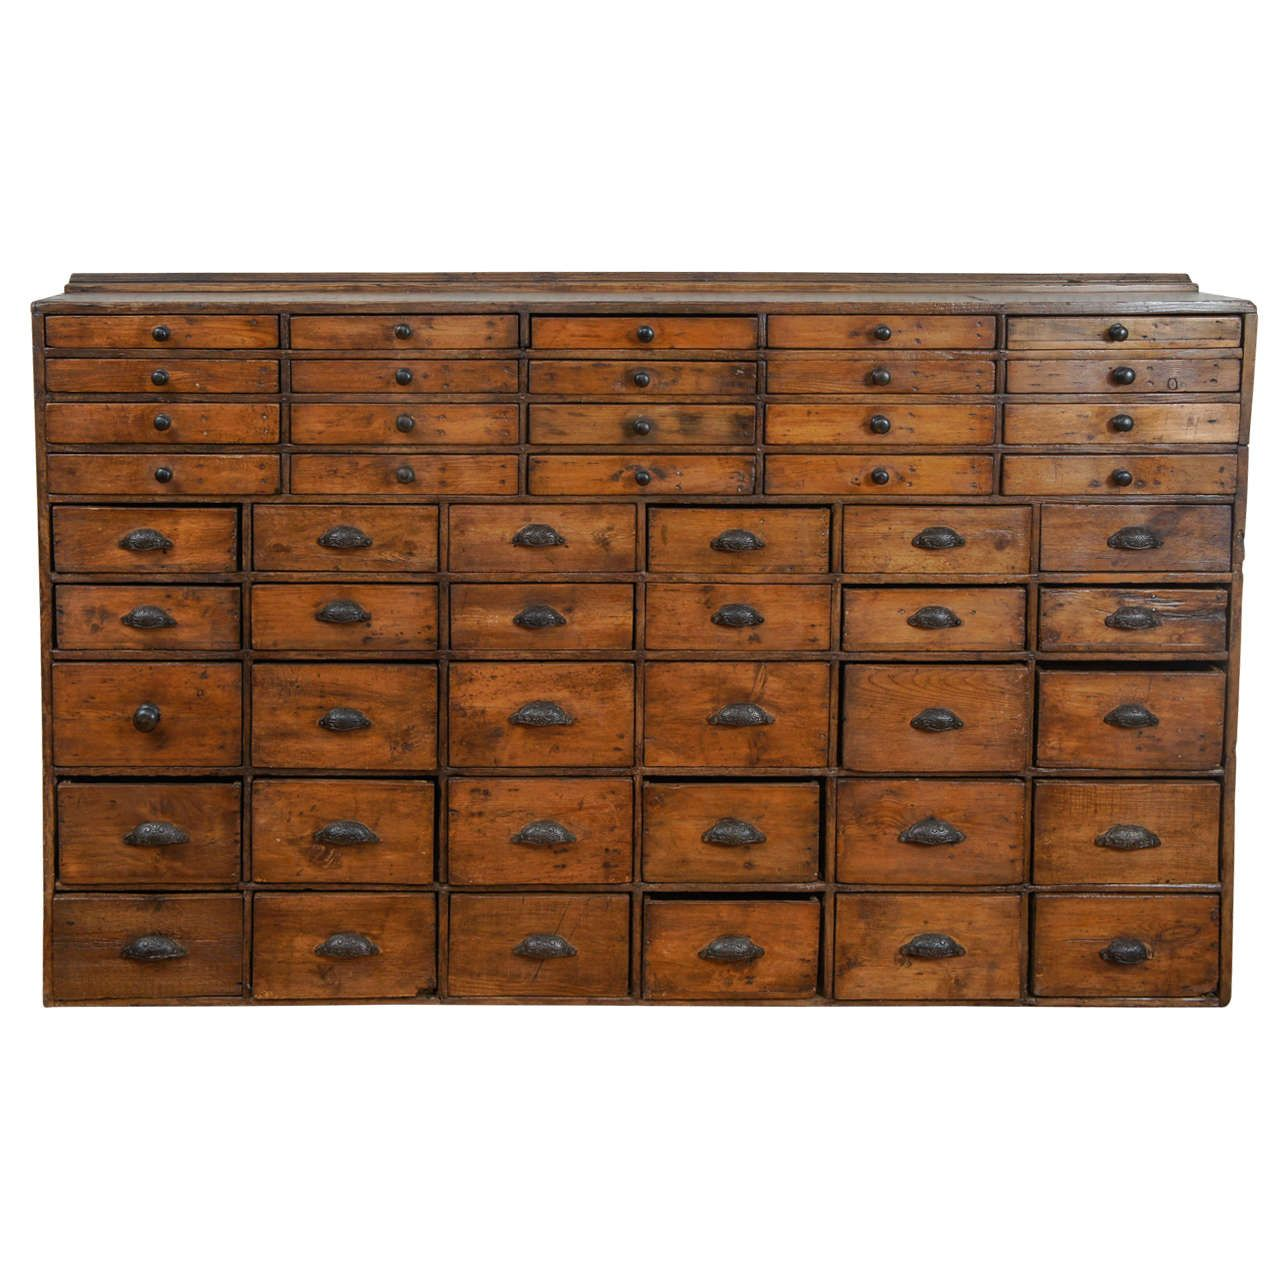 50 Drawer Pharmacy Apothecary. Metal FurnitureFurniture StorageAntique ... - 50 Drawer Pharmacy Apothecary Apothecary Cabinet, Furniture